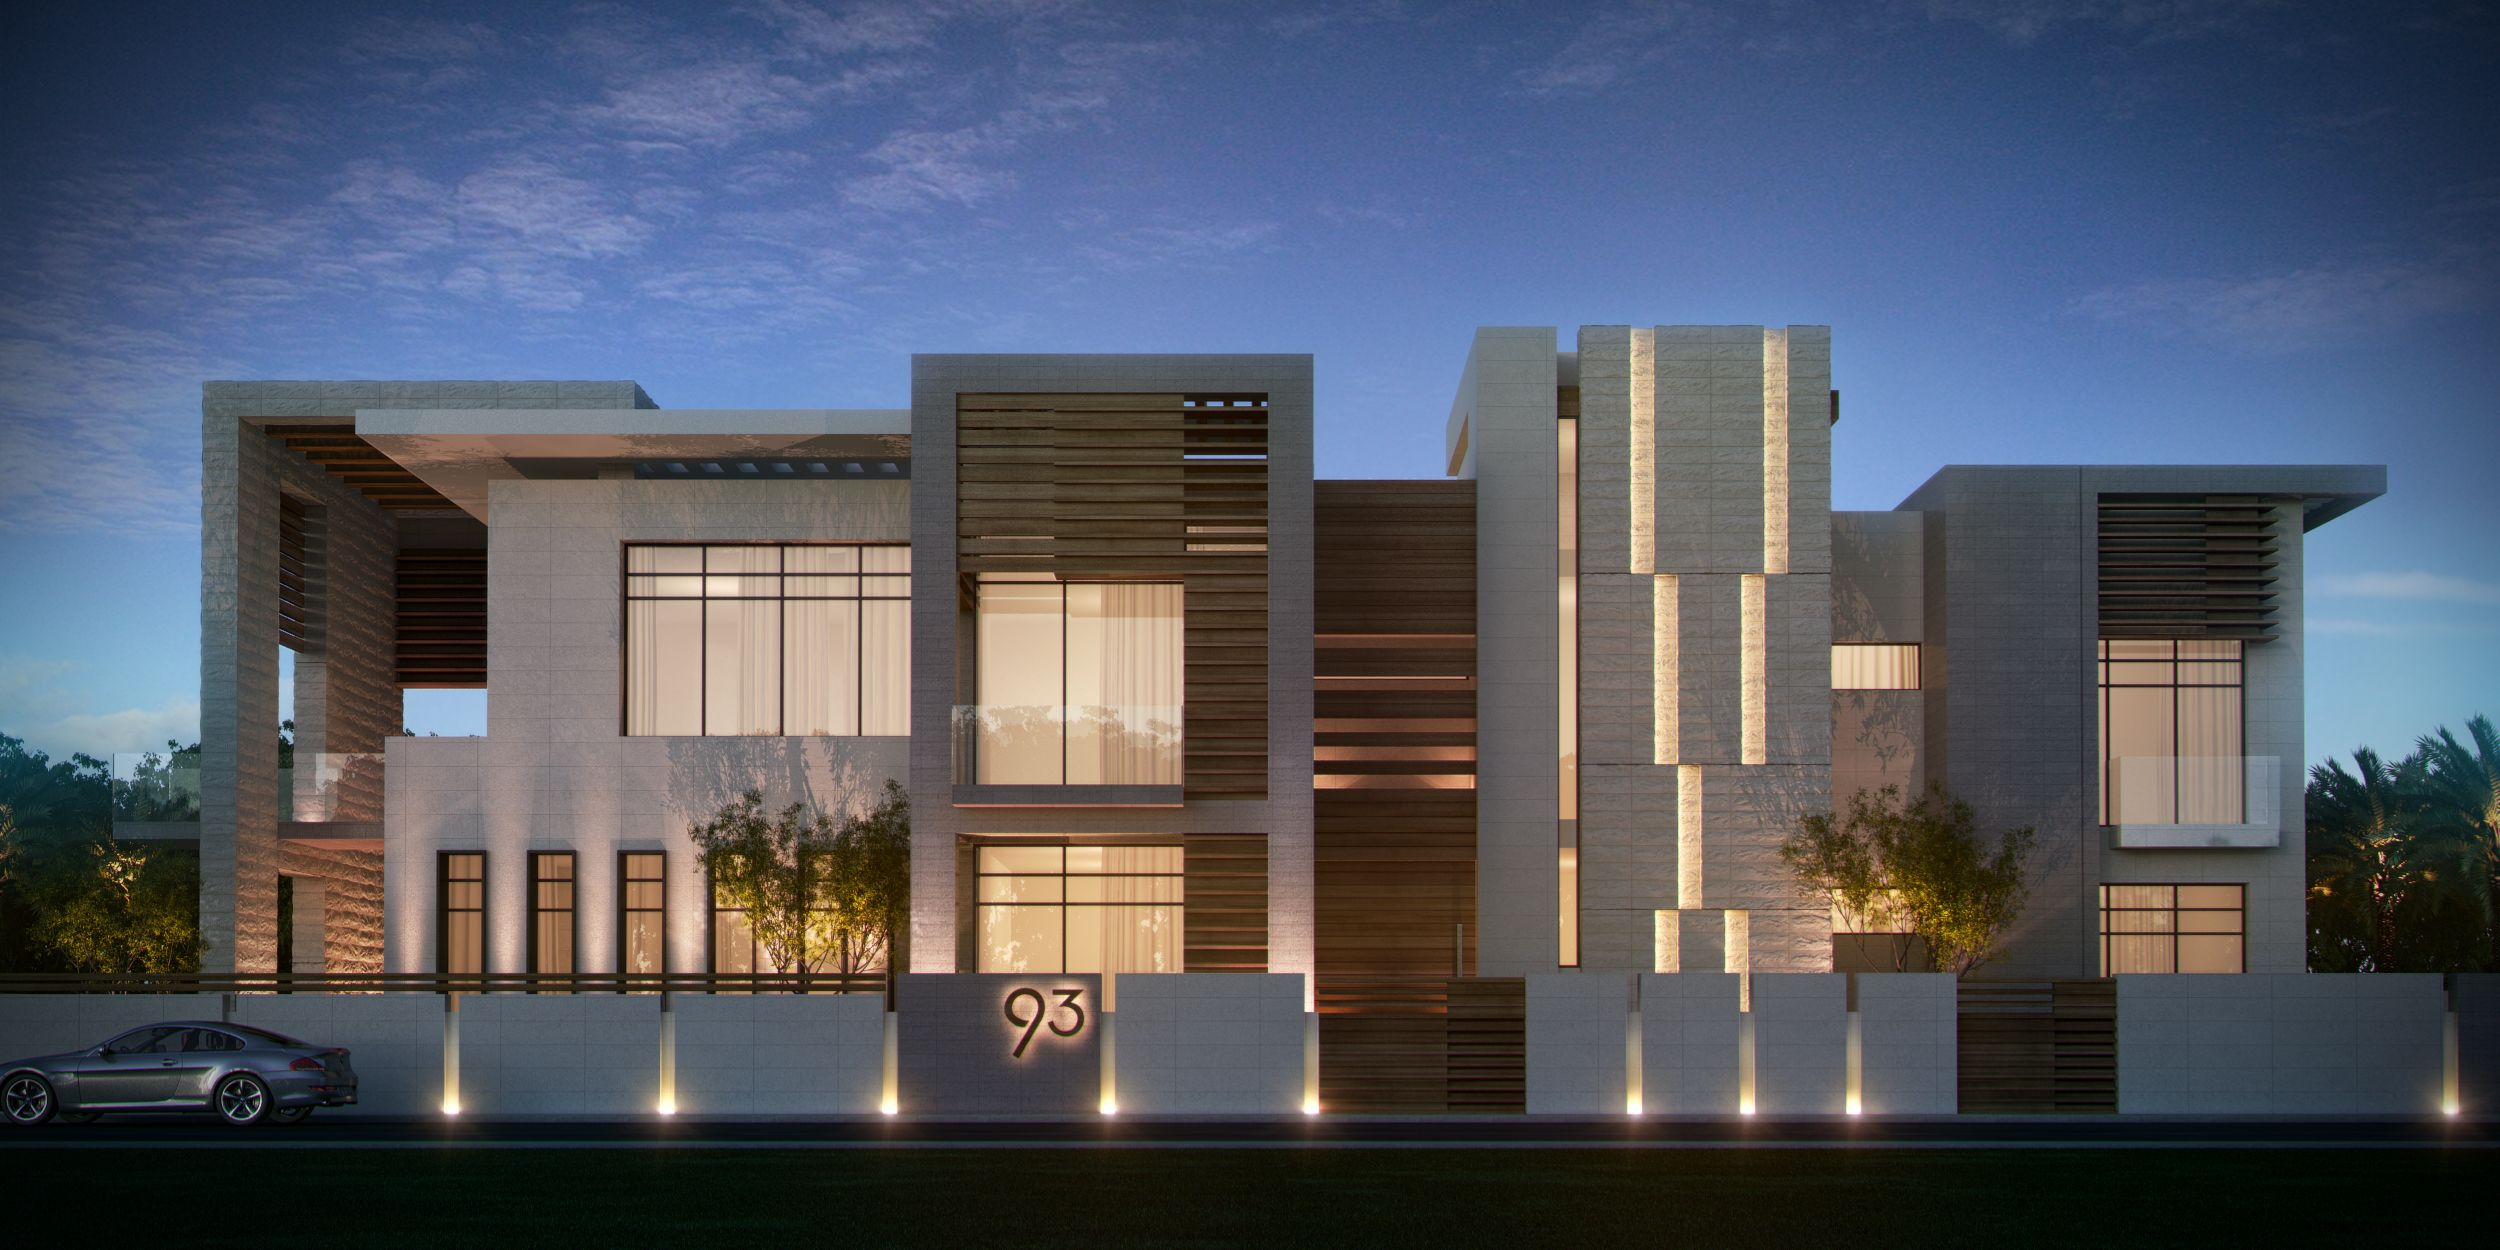 Private villa uae sarah sadeq architects sarah sadeq for Villa architecture design plans